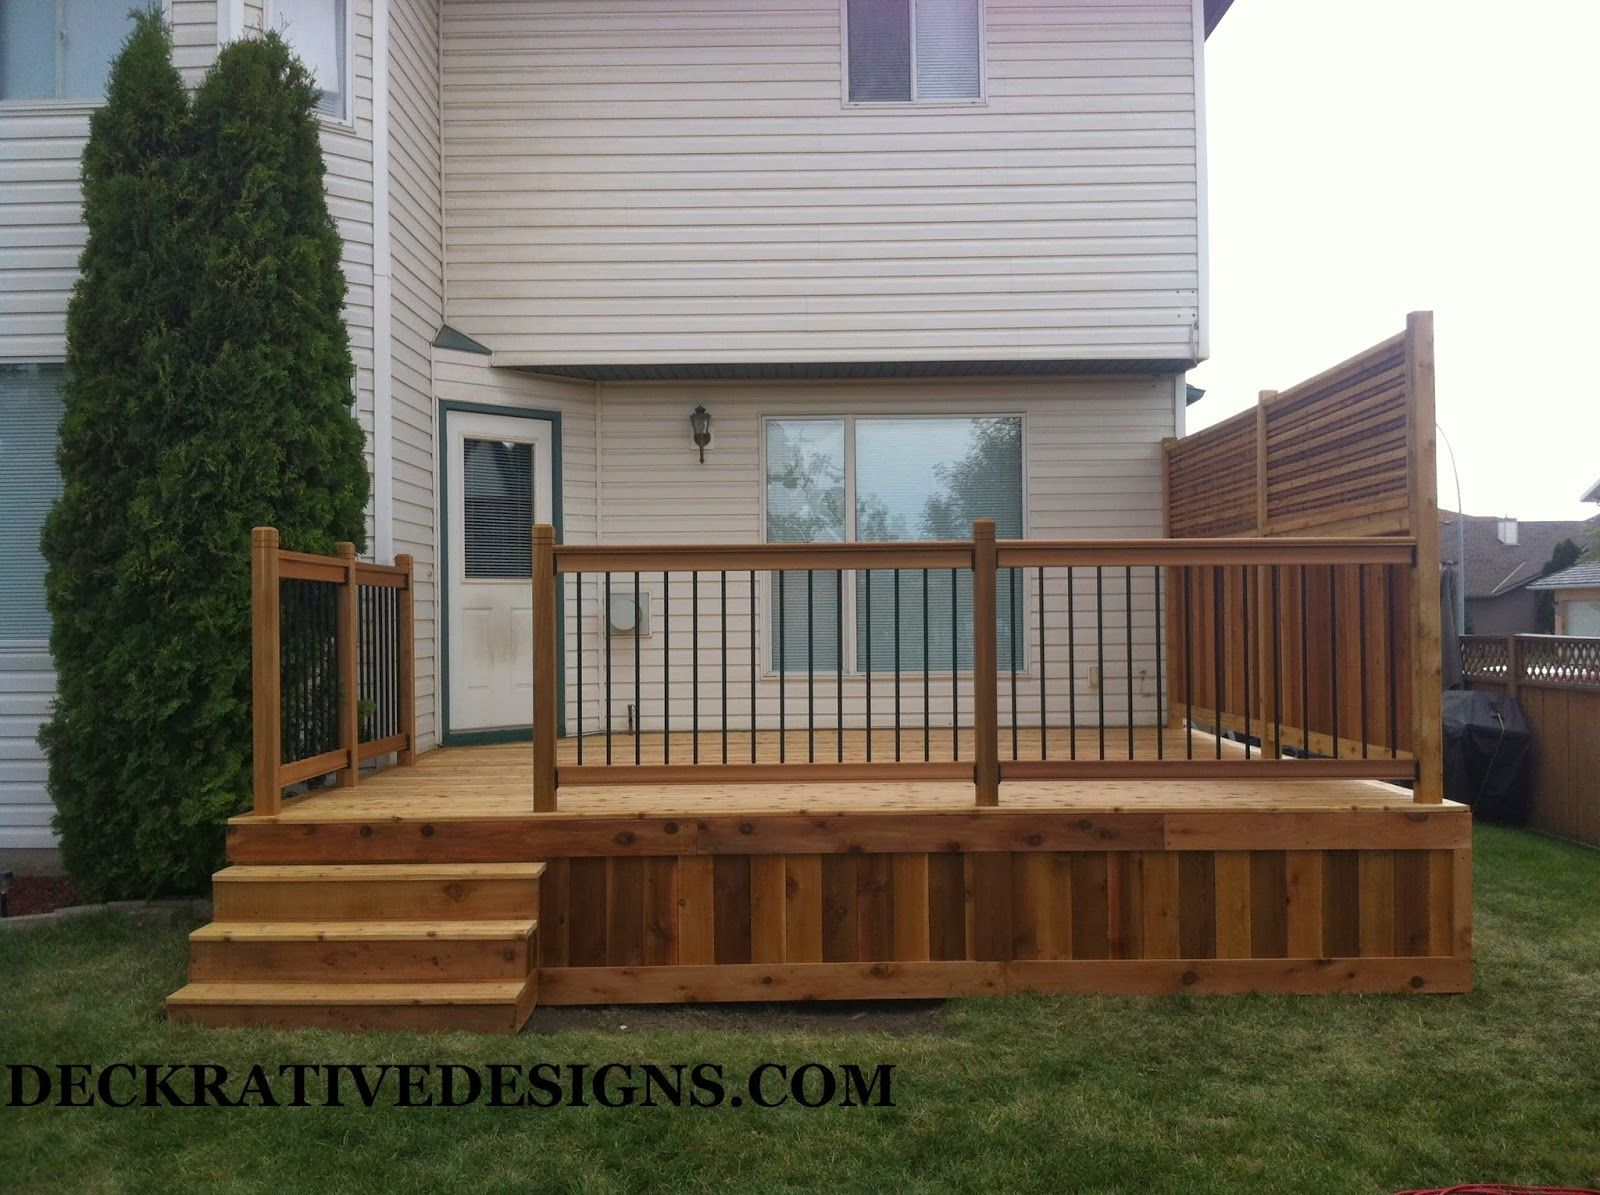 deck lattice ideas | decking designs and decking ideas by deckrative